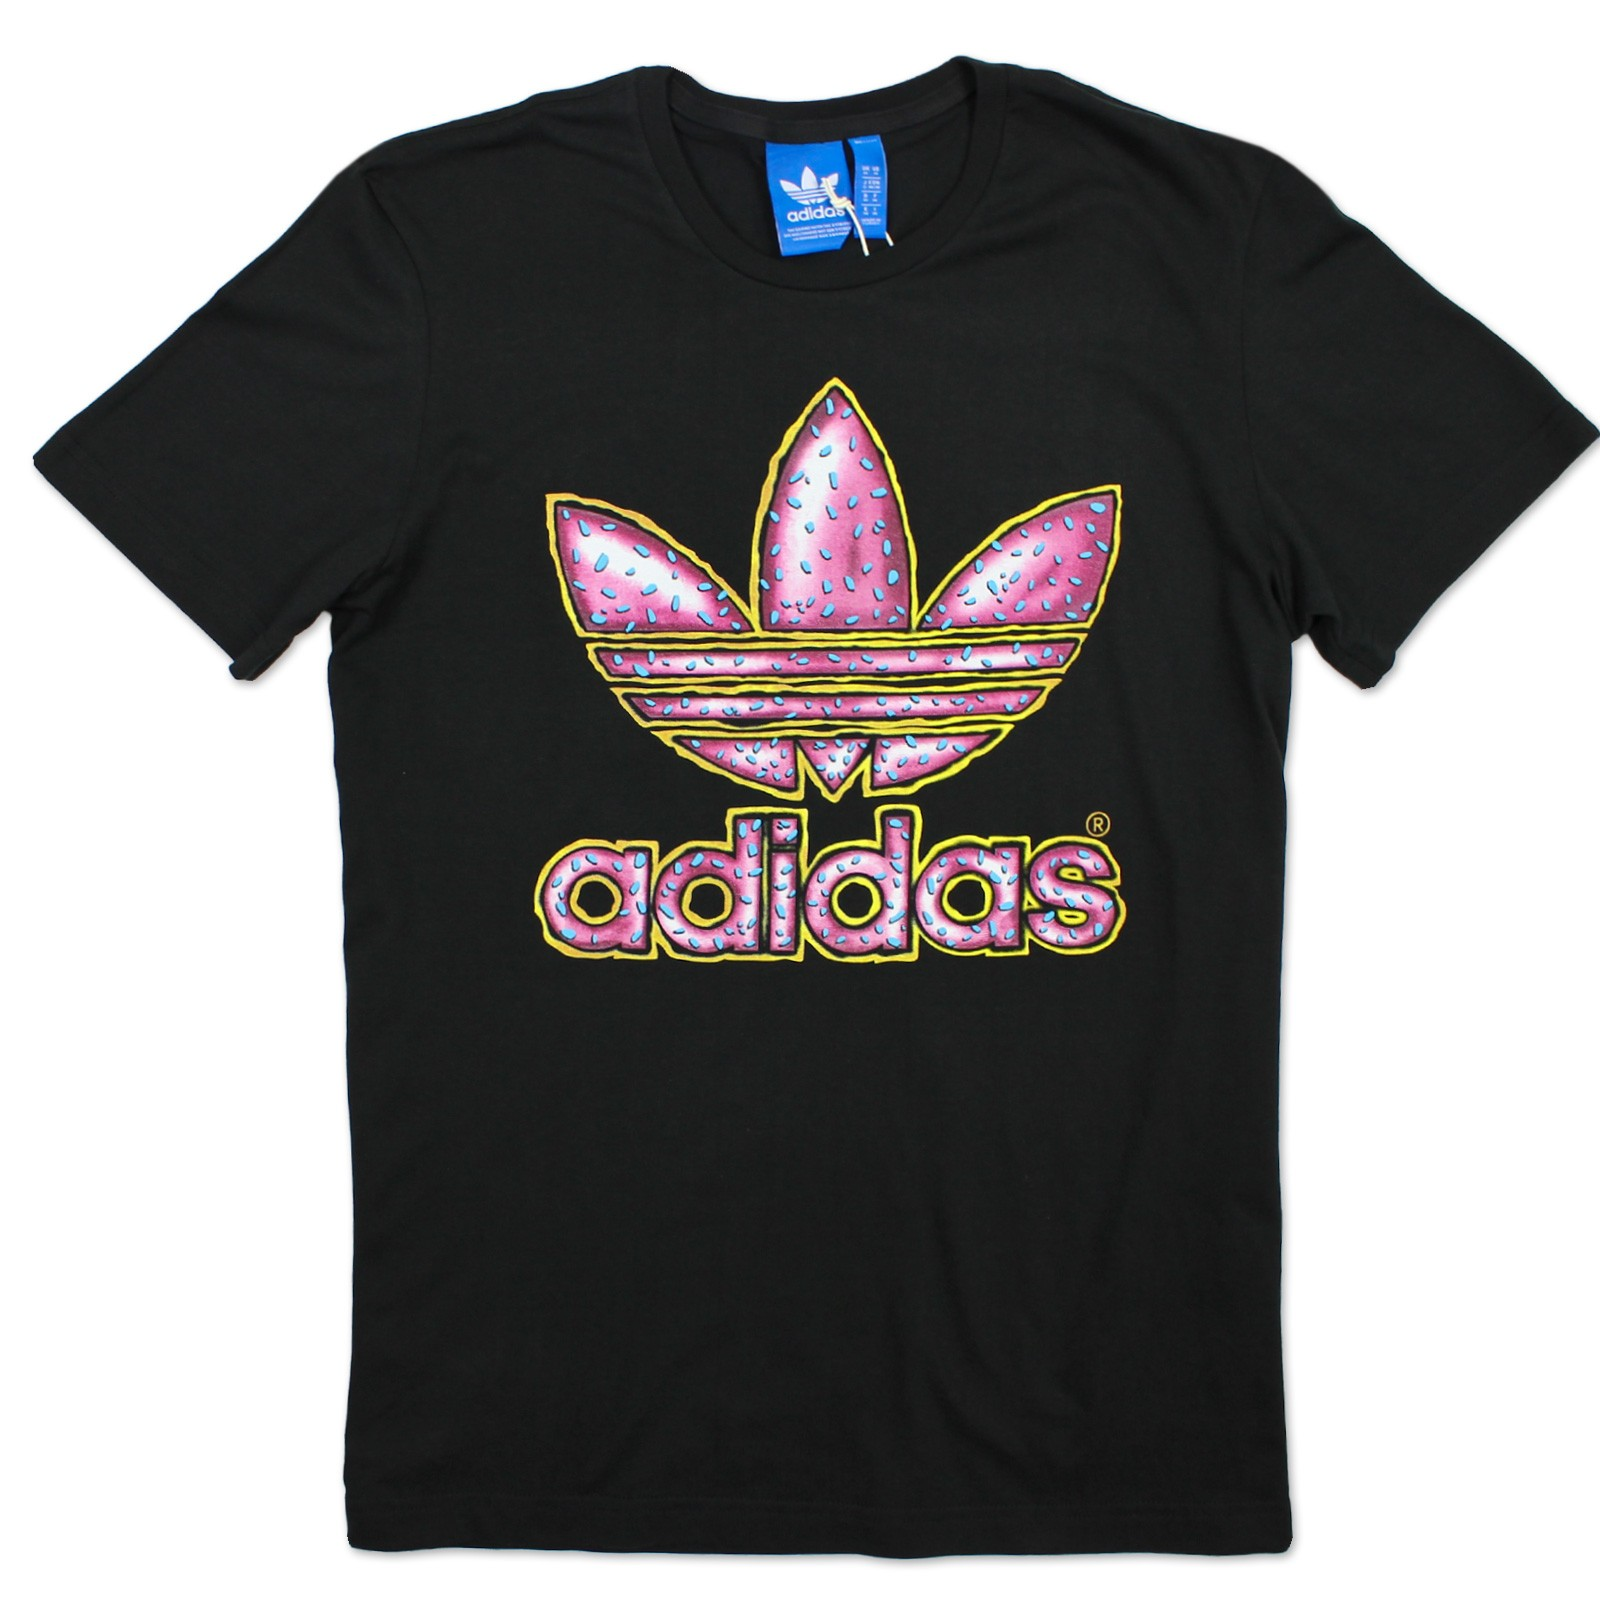 Adidas originals graphic trefoil donut t shirt men 39 s for Adidas lotus t shirt